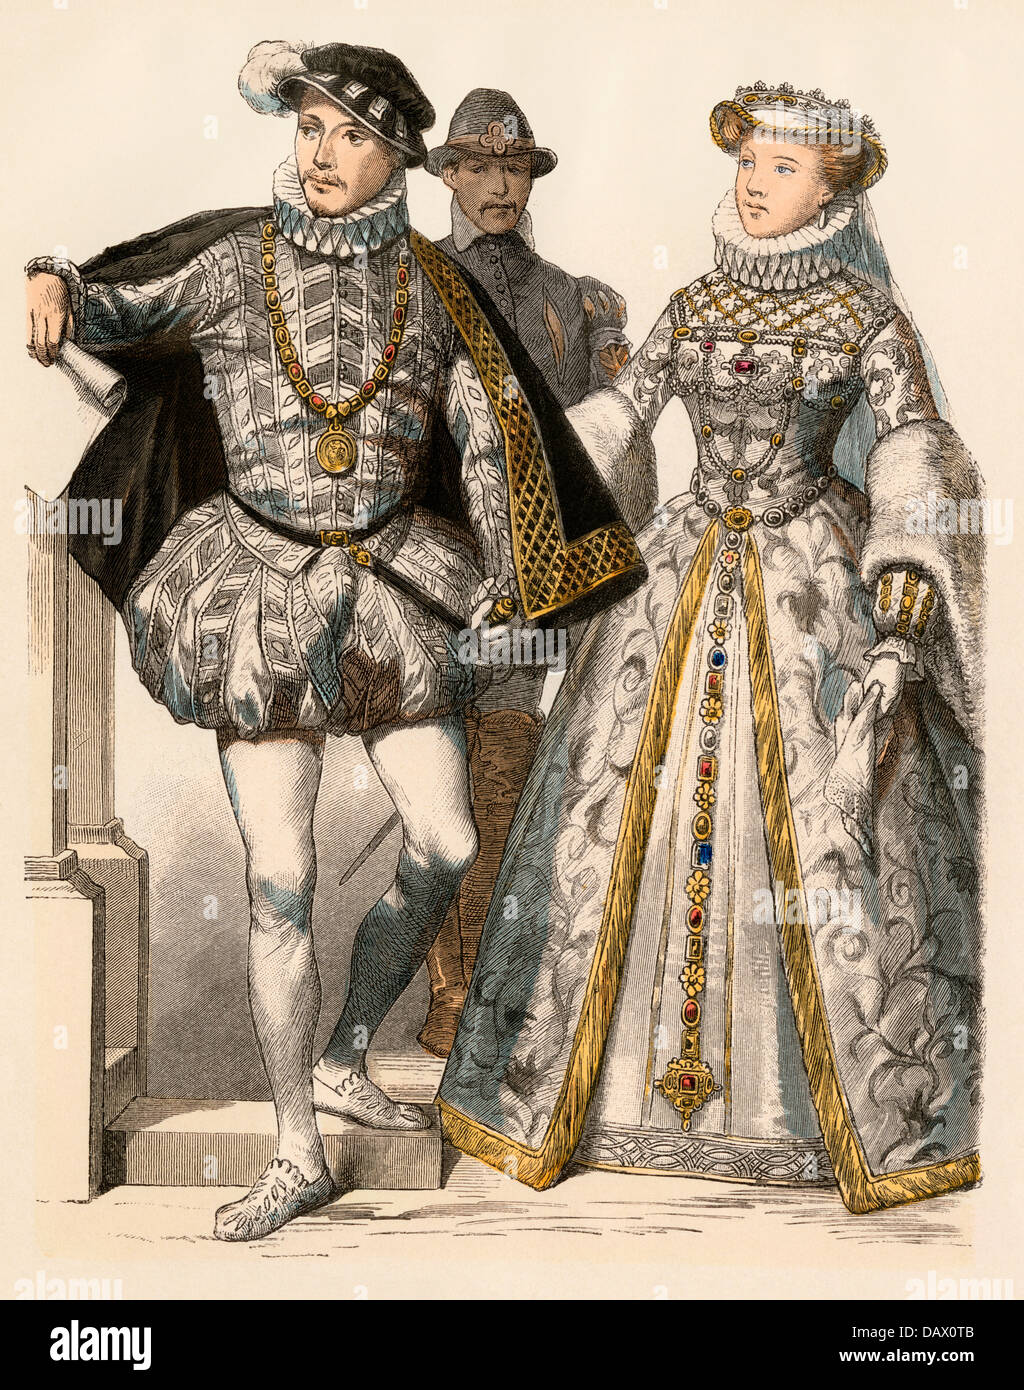 King of France Charles IX and his wife, Elizabeth of Austria, 1500s. Hand-colored print Stock Photo